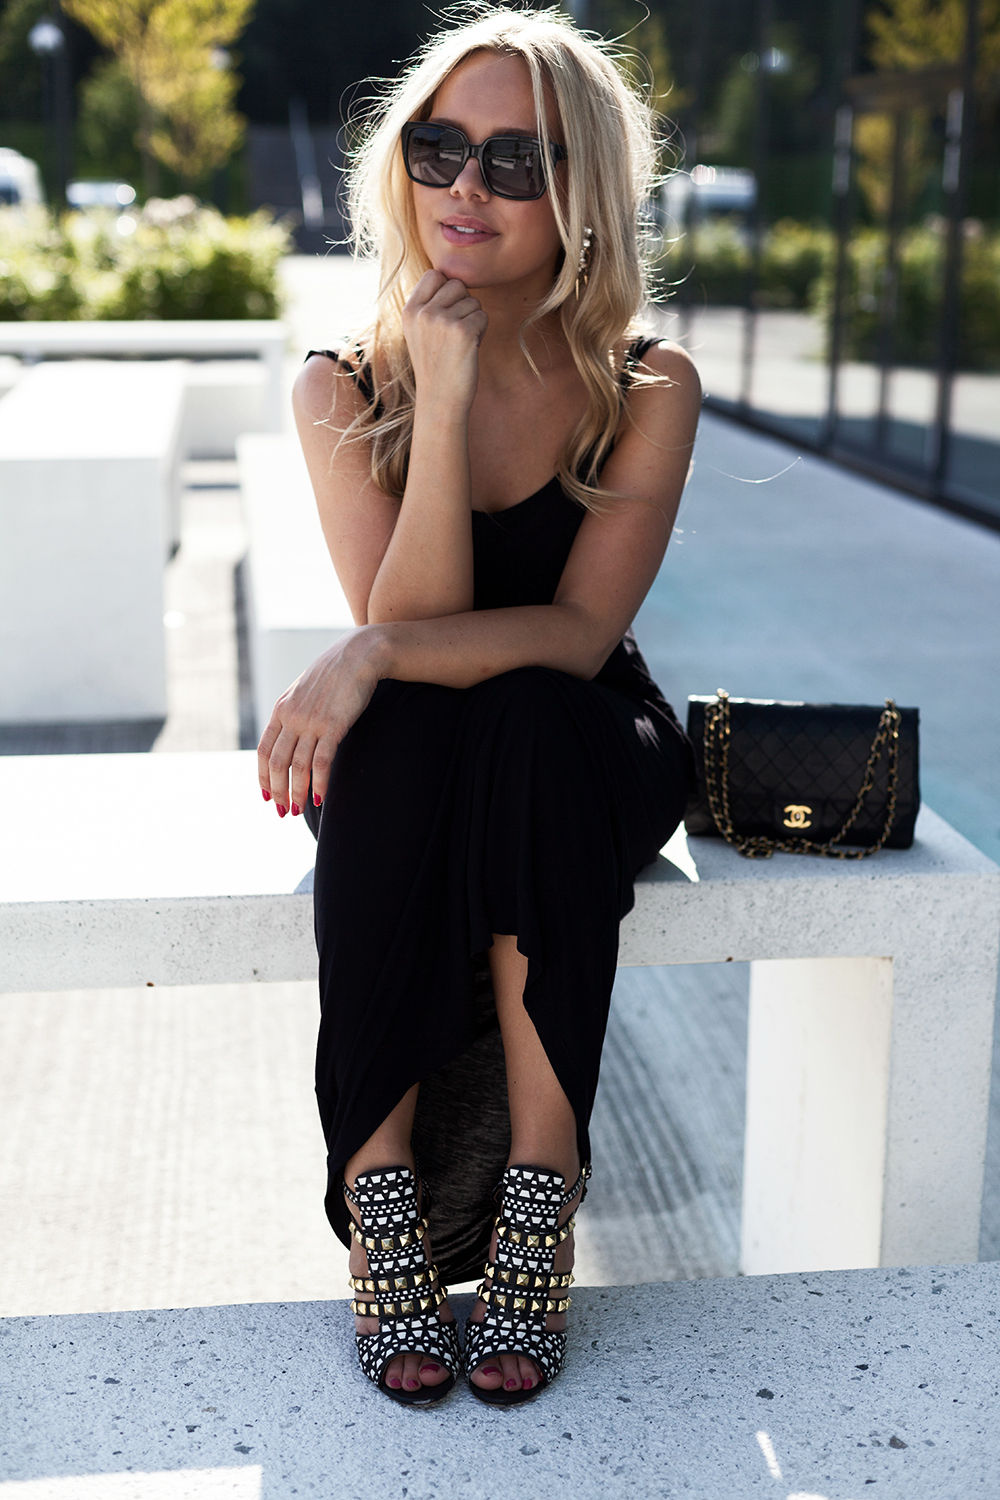 Cathrine Heienberg in a black dress from NLY, studded shoes from Zara and a bag from Chanel